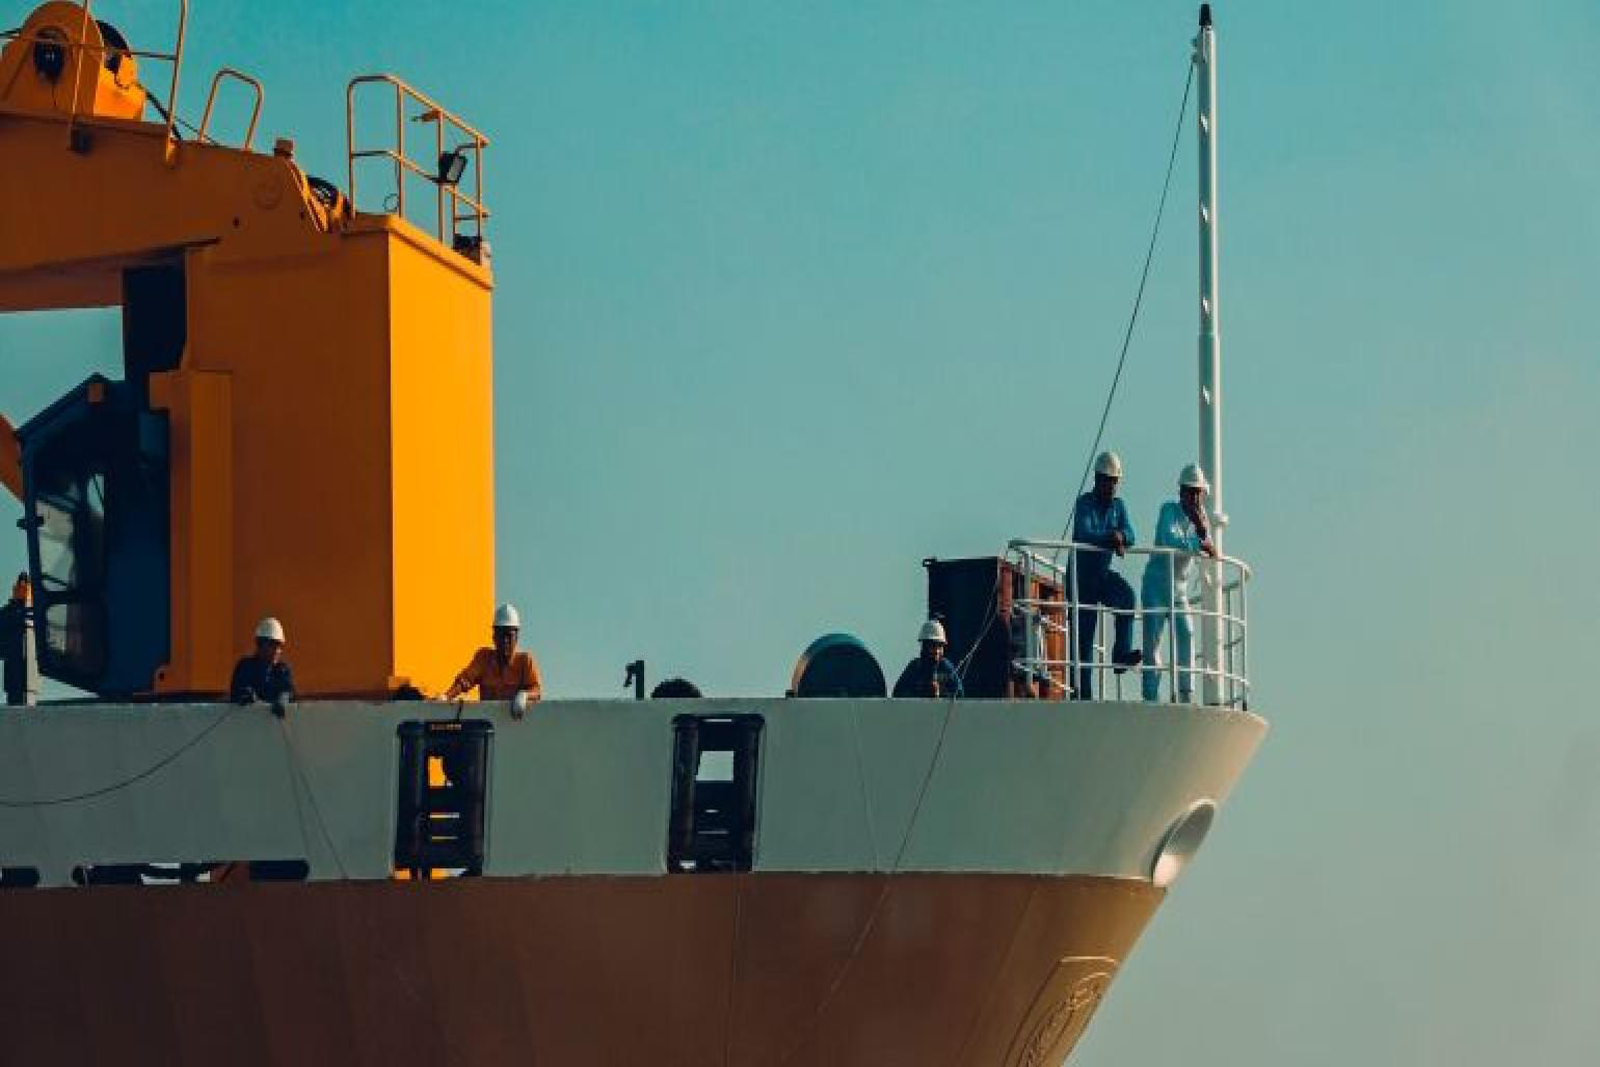 Indian seafarers face fresh challenges as Covid epidemic overwhelms the country